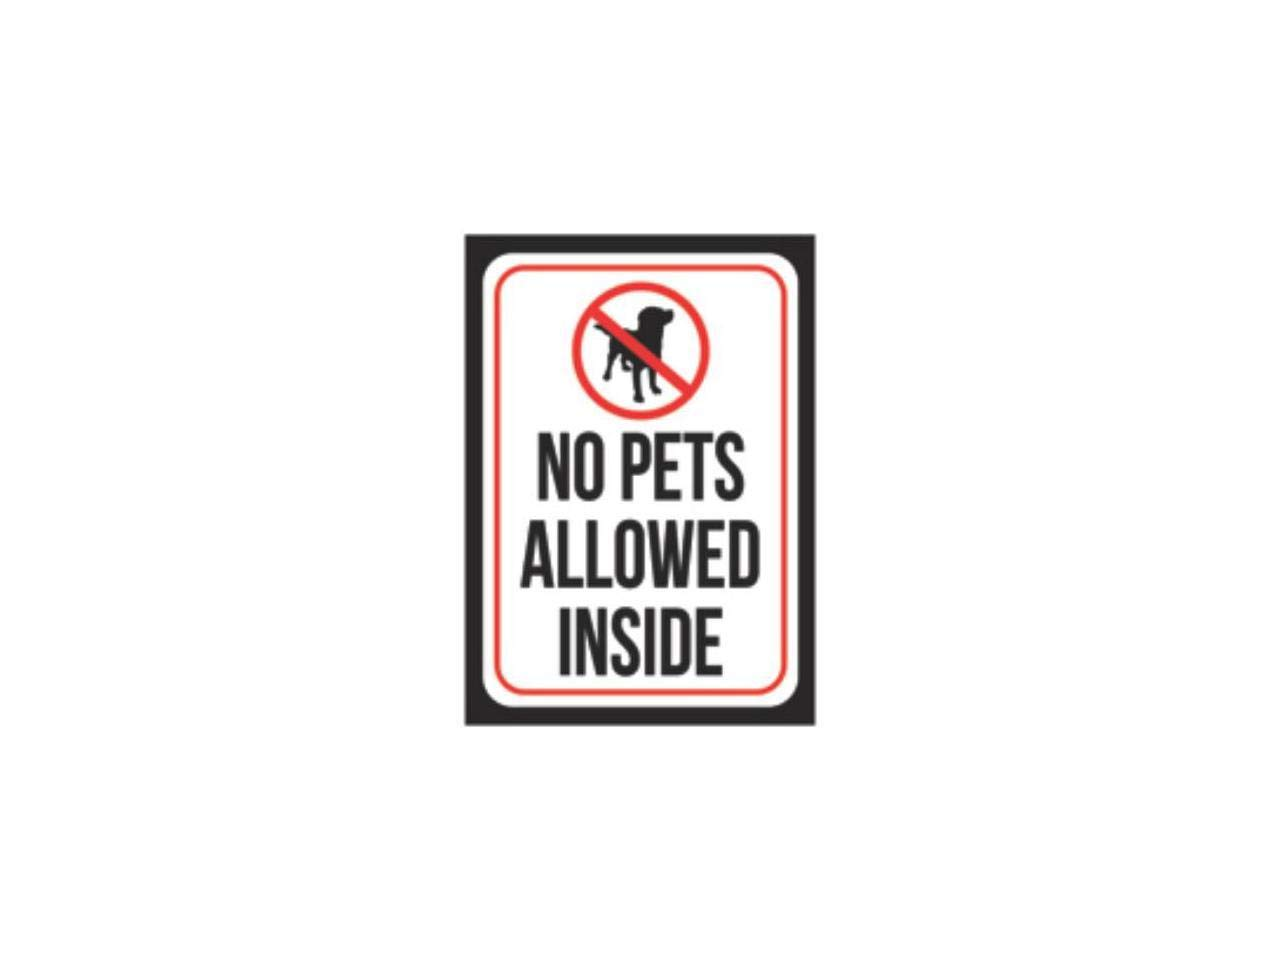 Aluminum Metal No Pets Allowed Inside Print Red White Black Poster Office Business Notice Window Sign